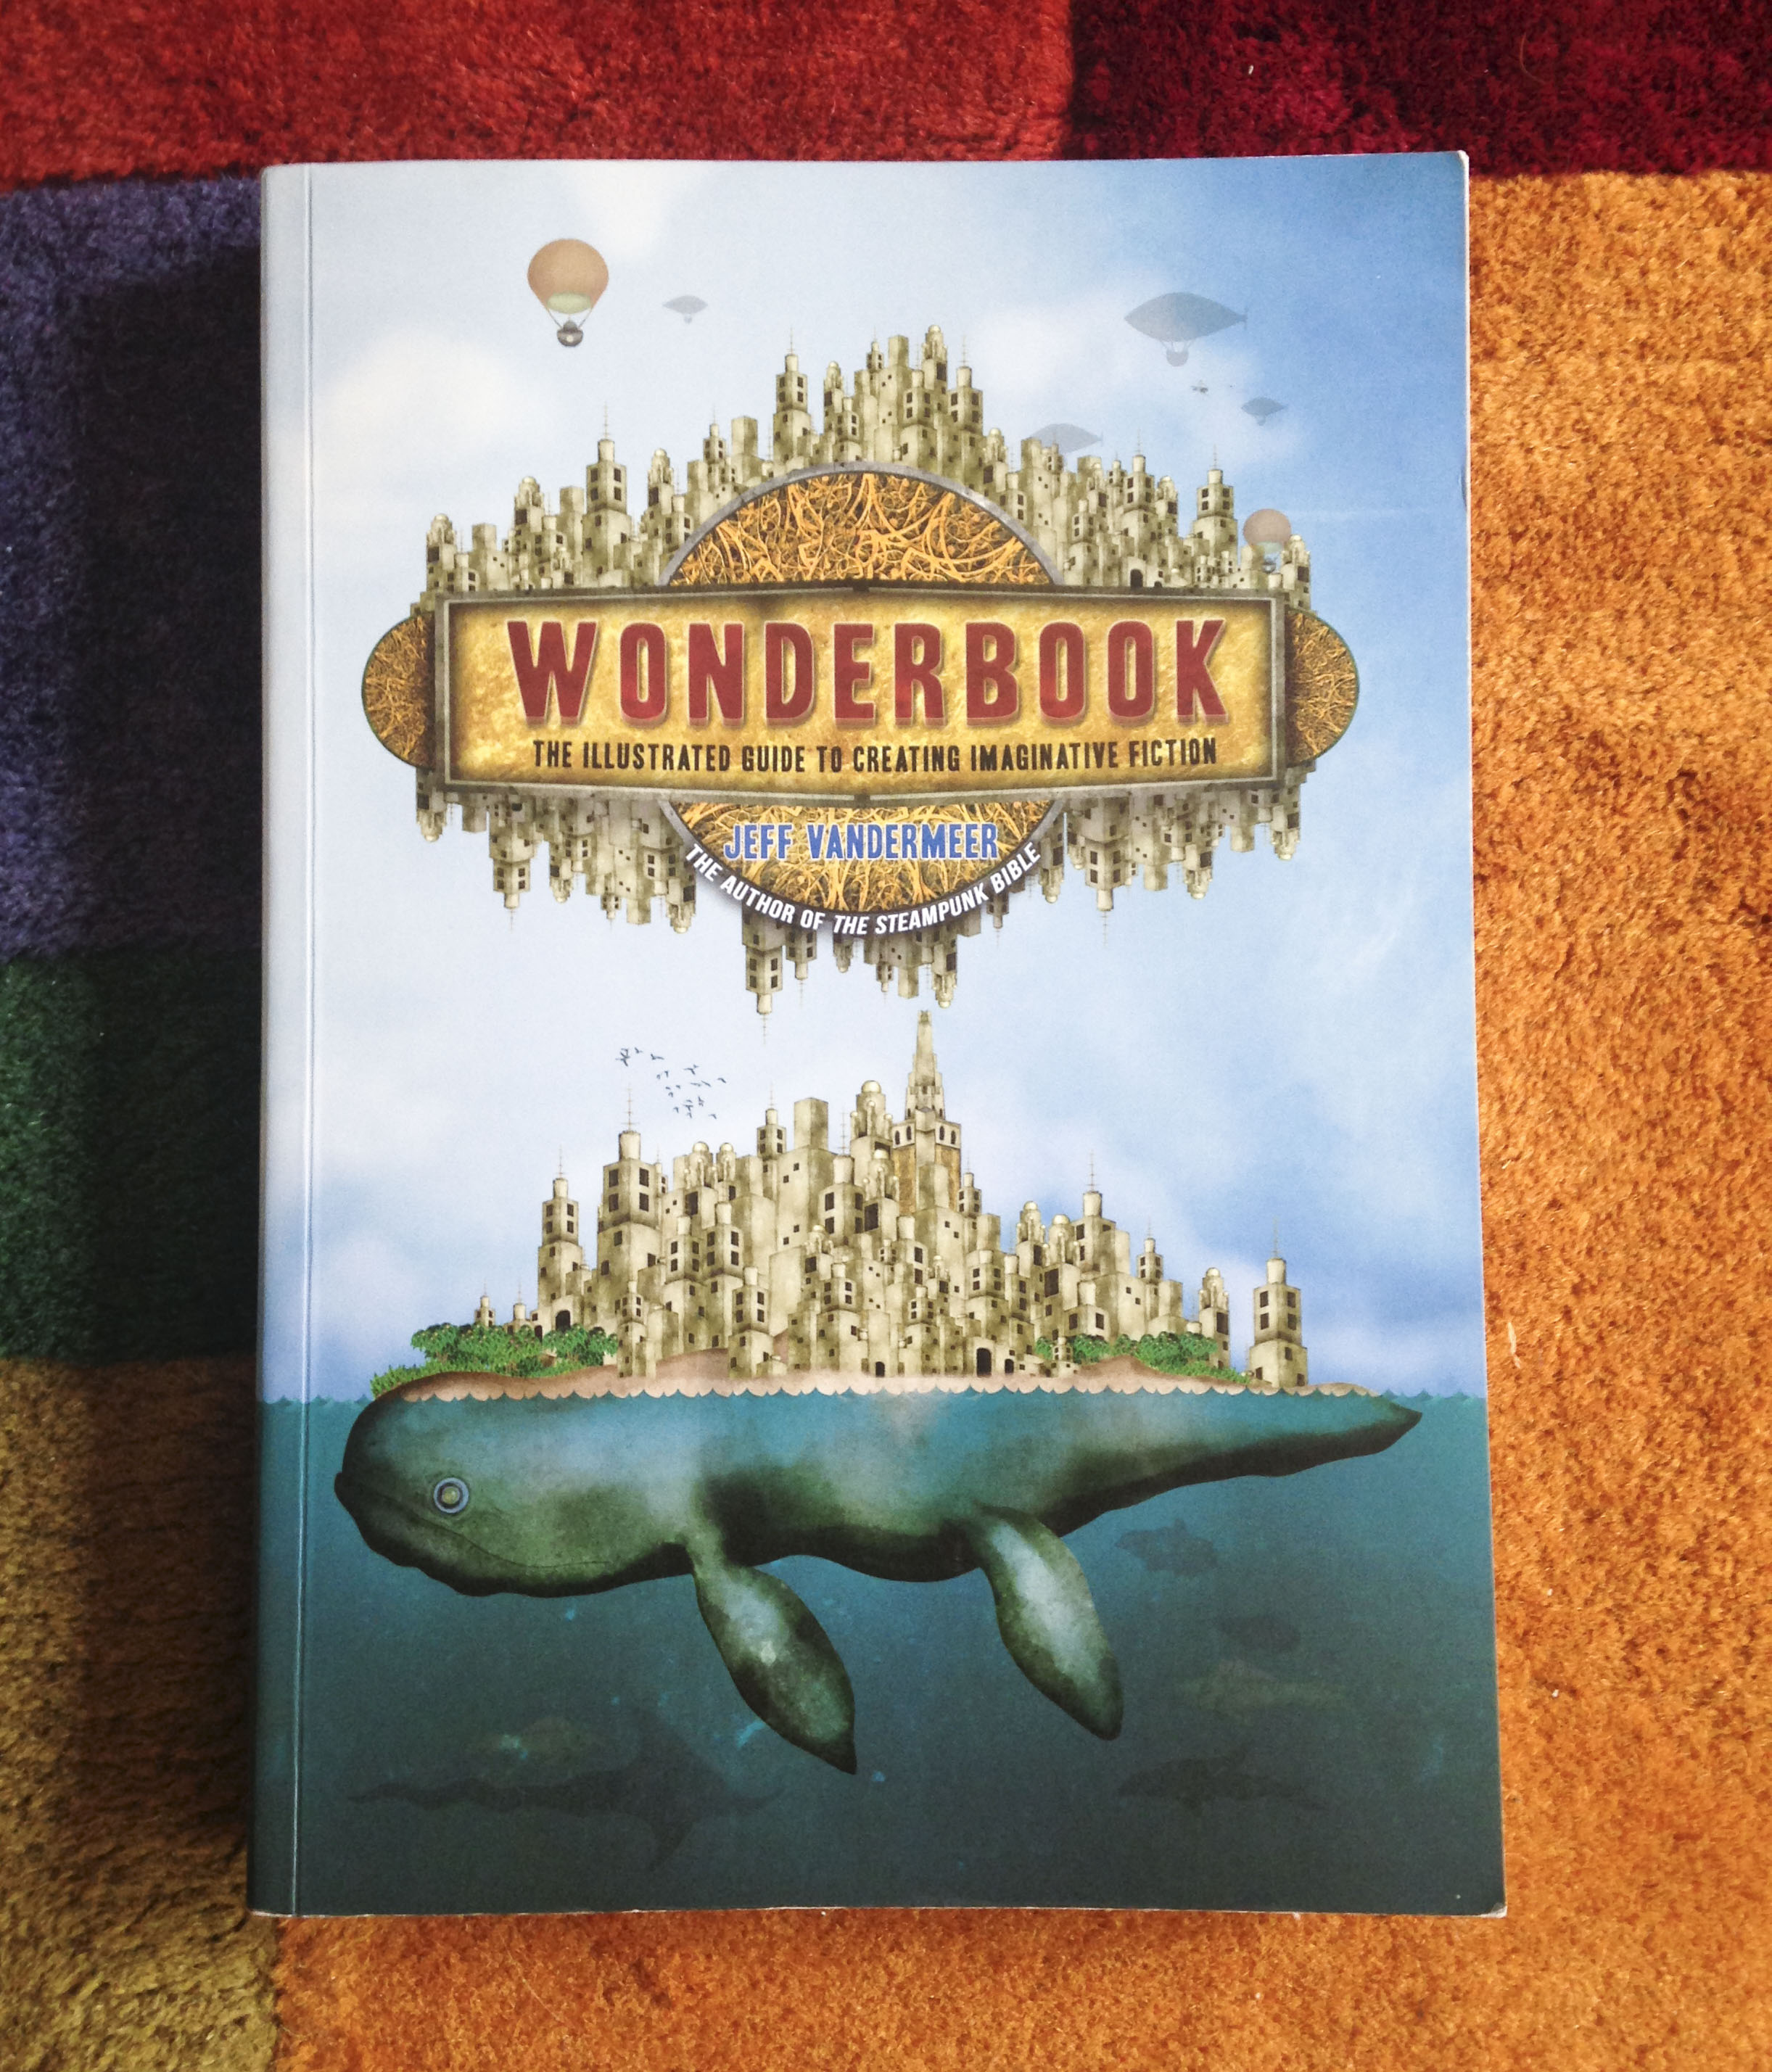 You've just met the spectacular WONDERBOOK. And your life may never be the same again. | lucyflint.com